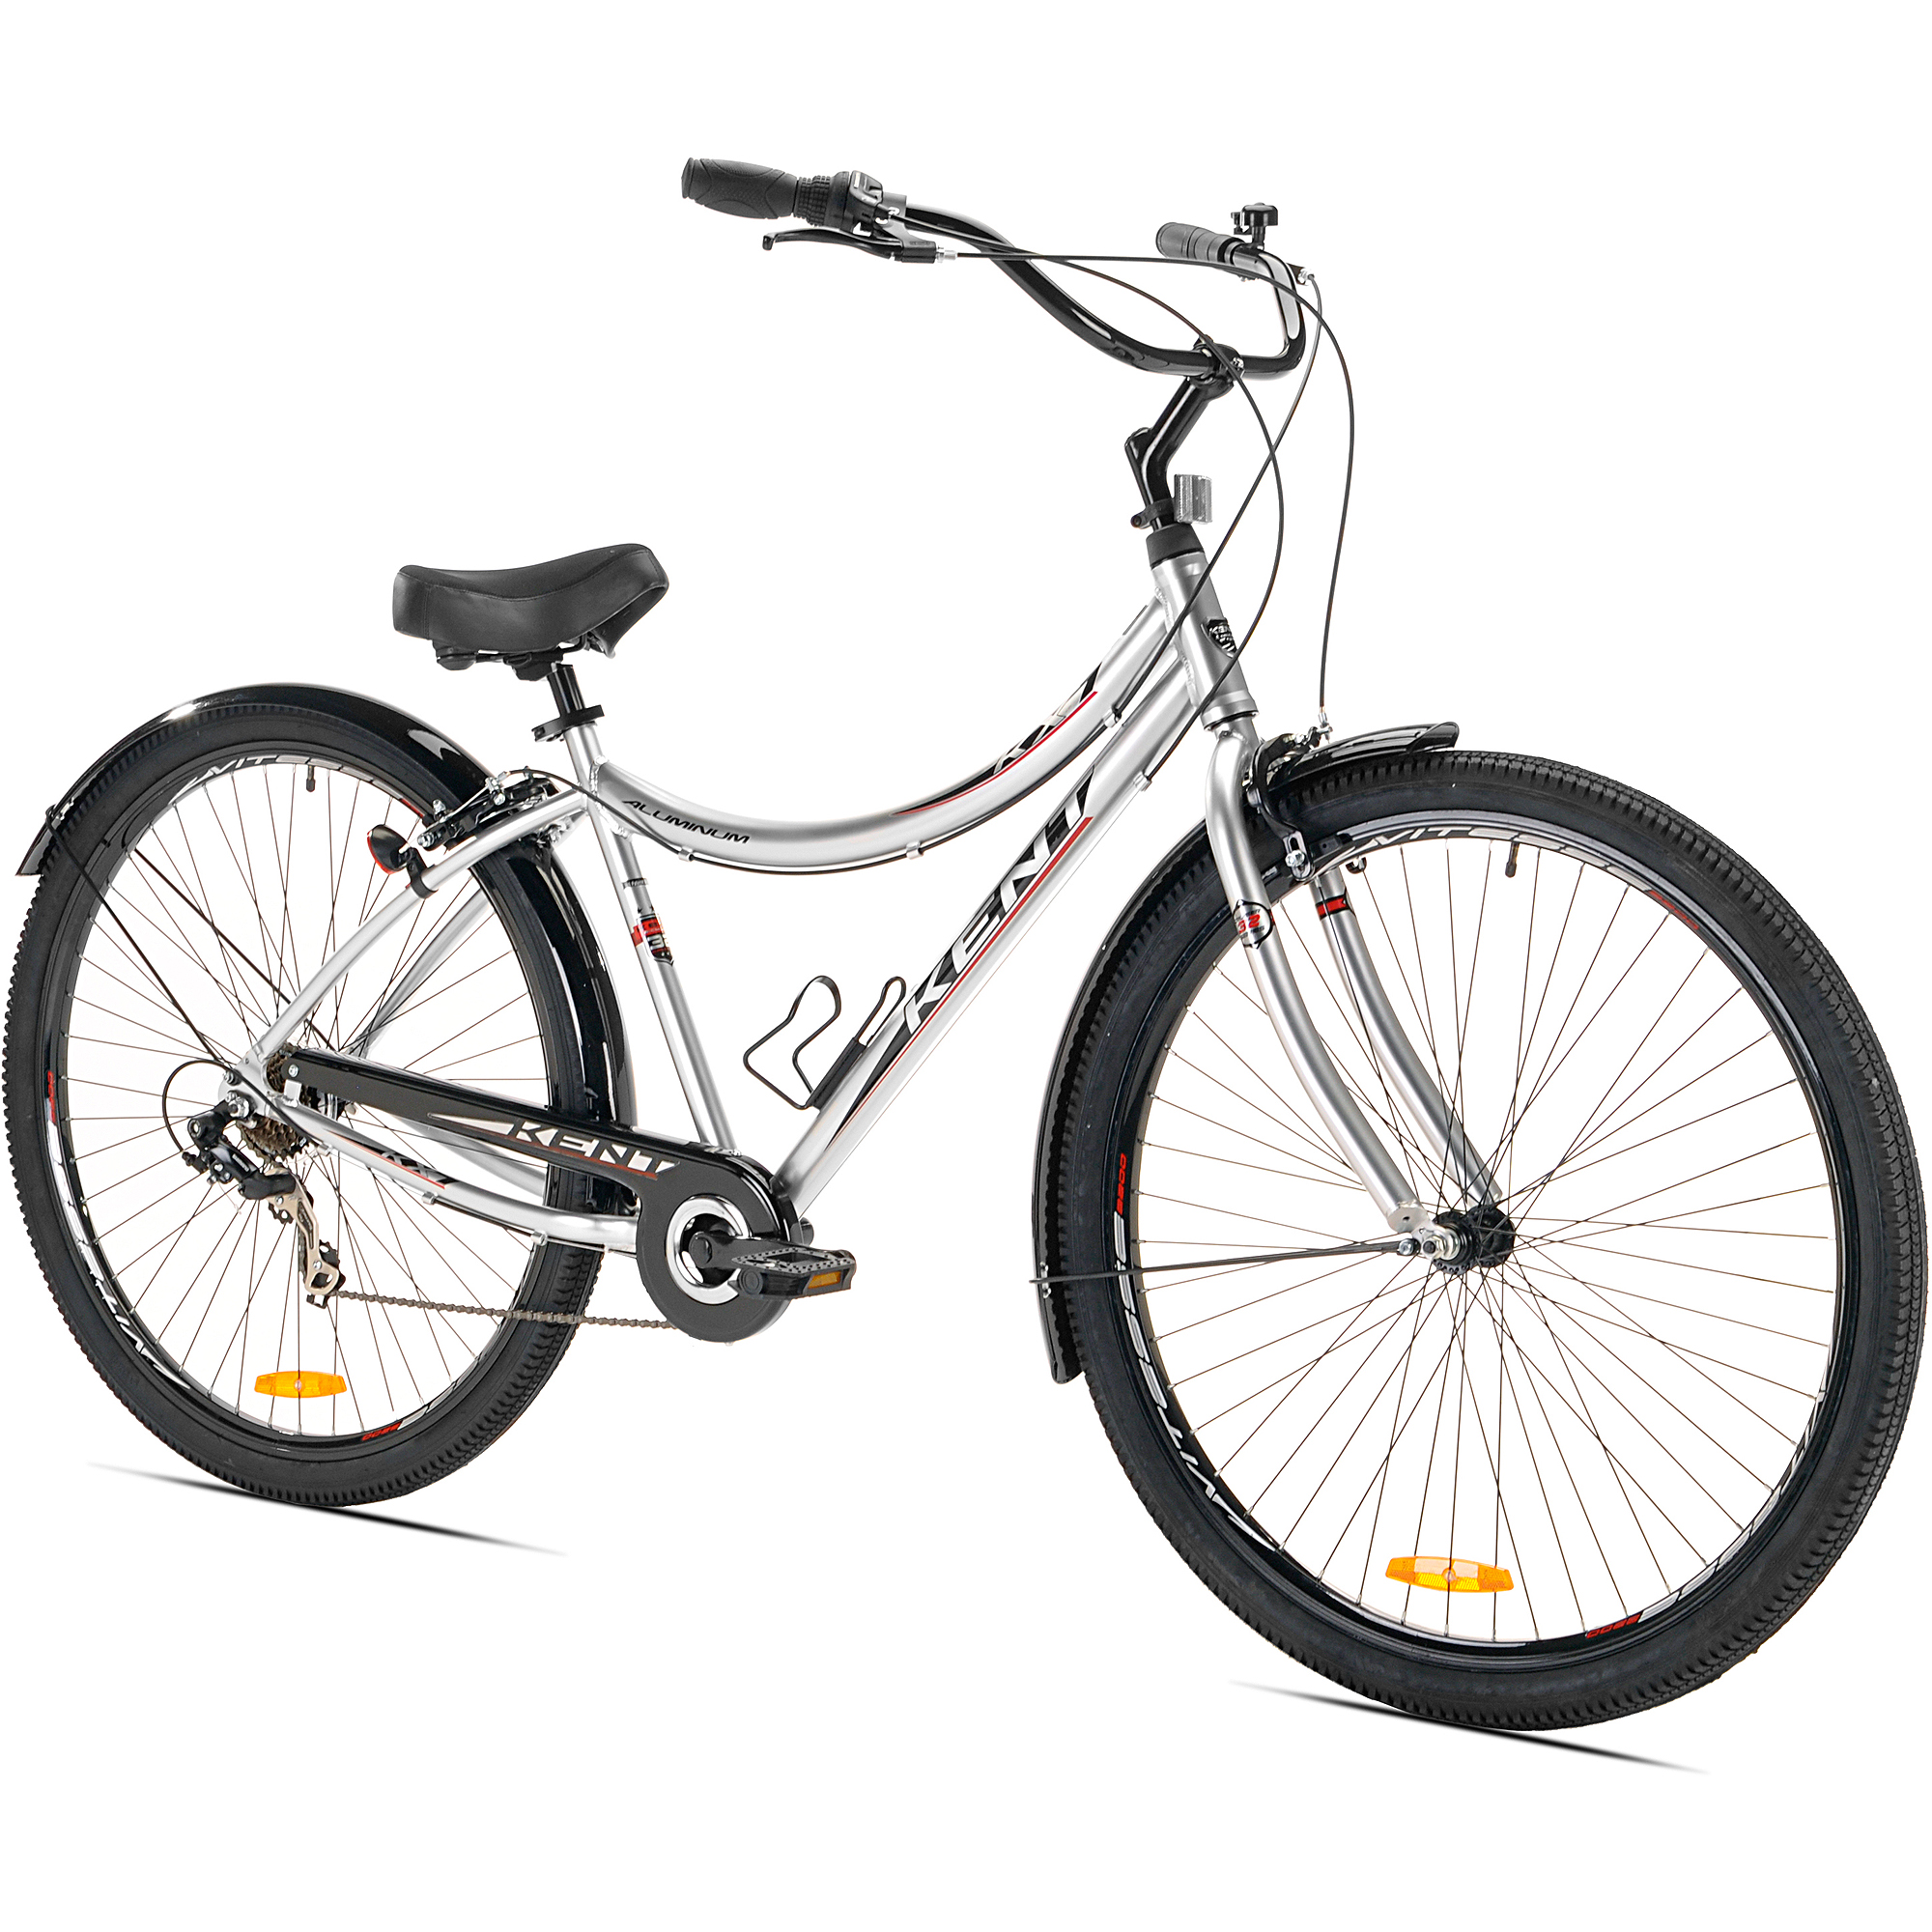 "Kent 32"" KX-7 Cruiser Men's Bike"